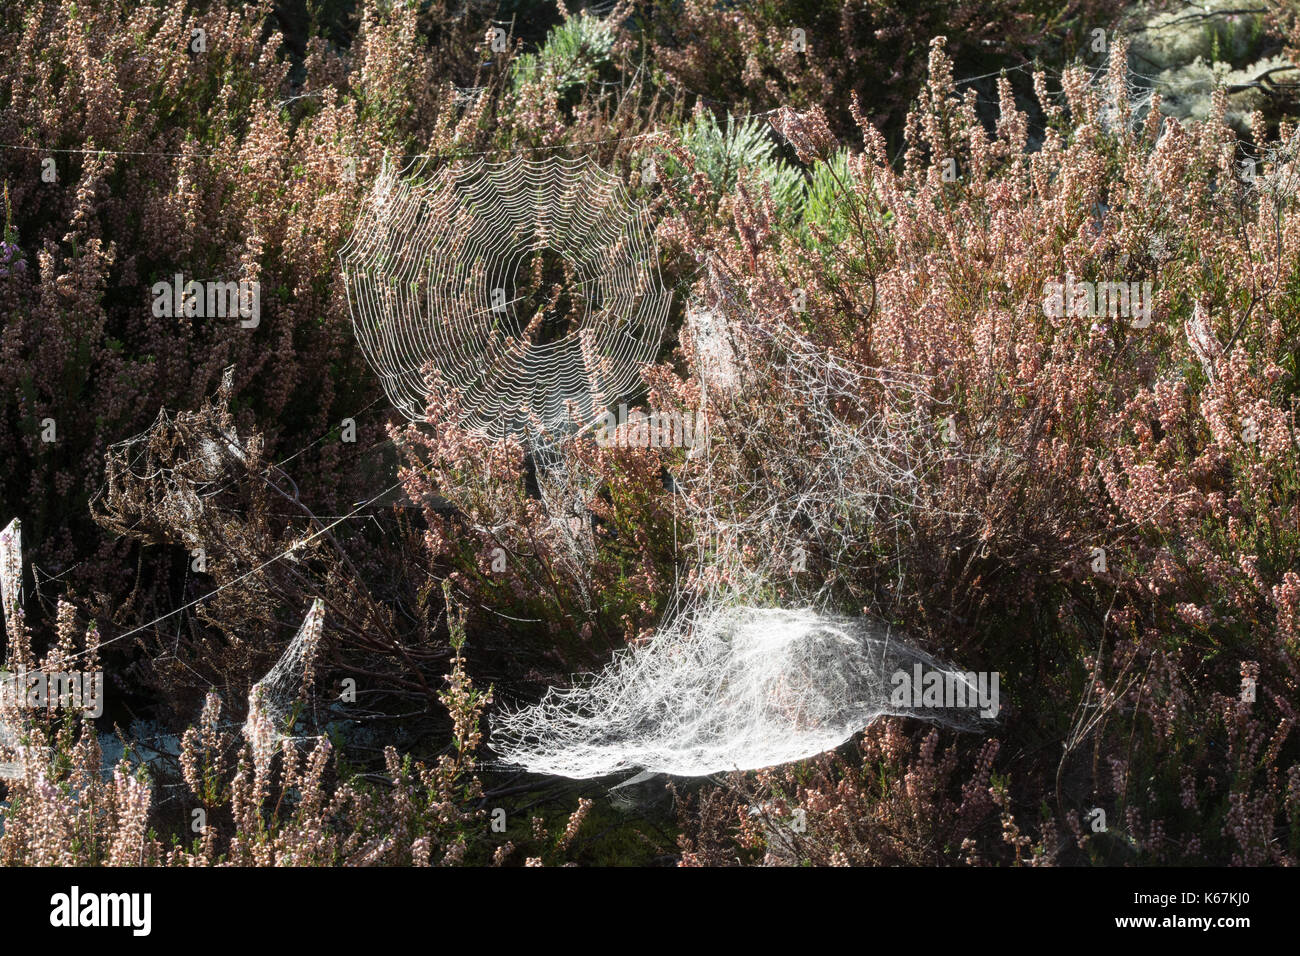 Spider's webs among heather early in the morning in autumn - Stock Image